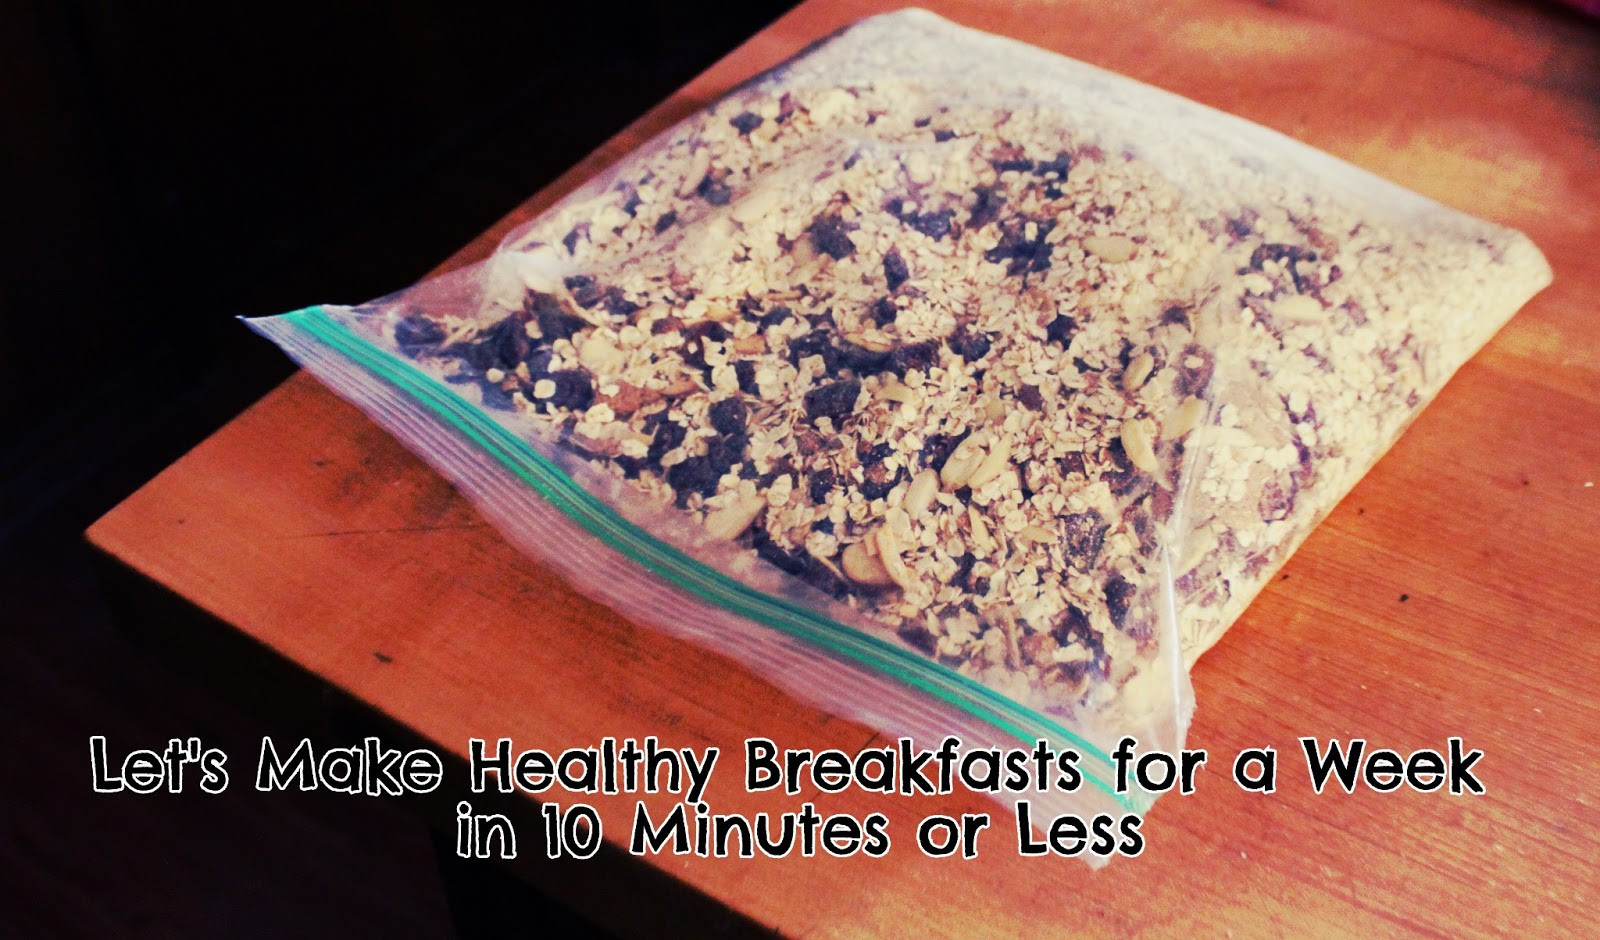 Healthy Breakfast For A Week  Let s Make Healthy Breakfasts for a Week in 10 Minutes or